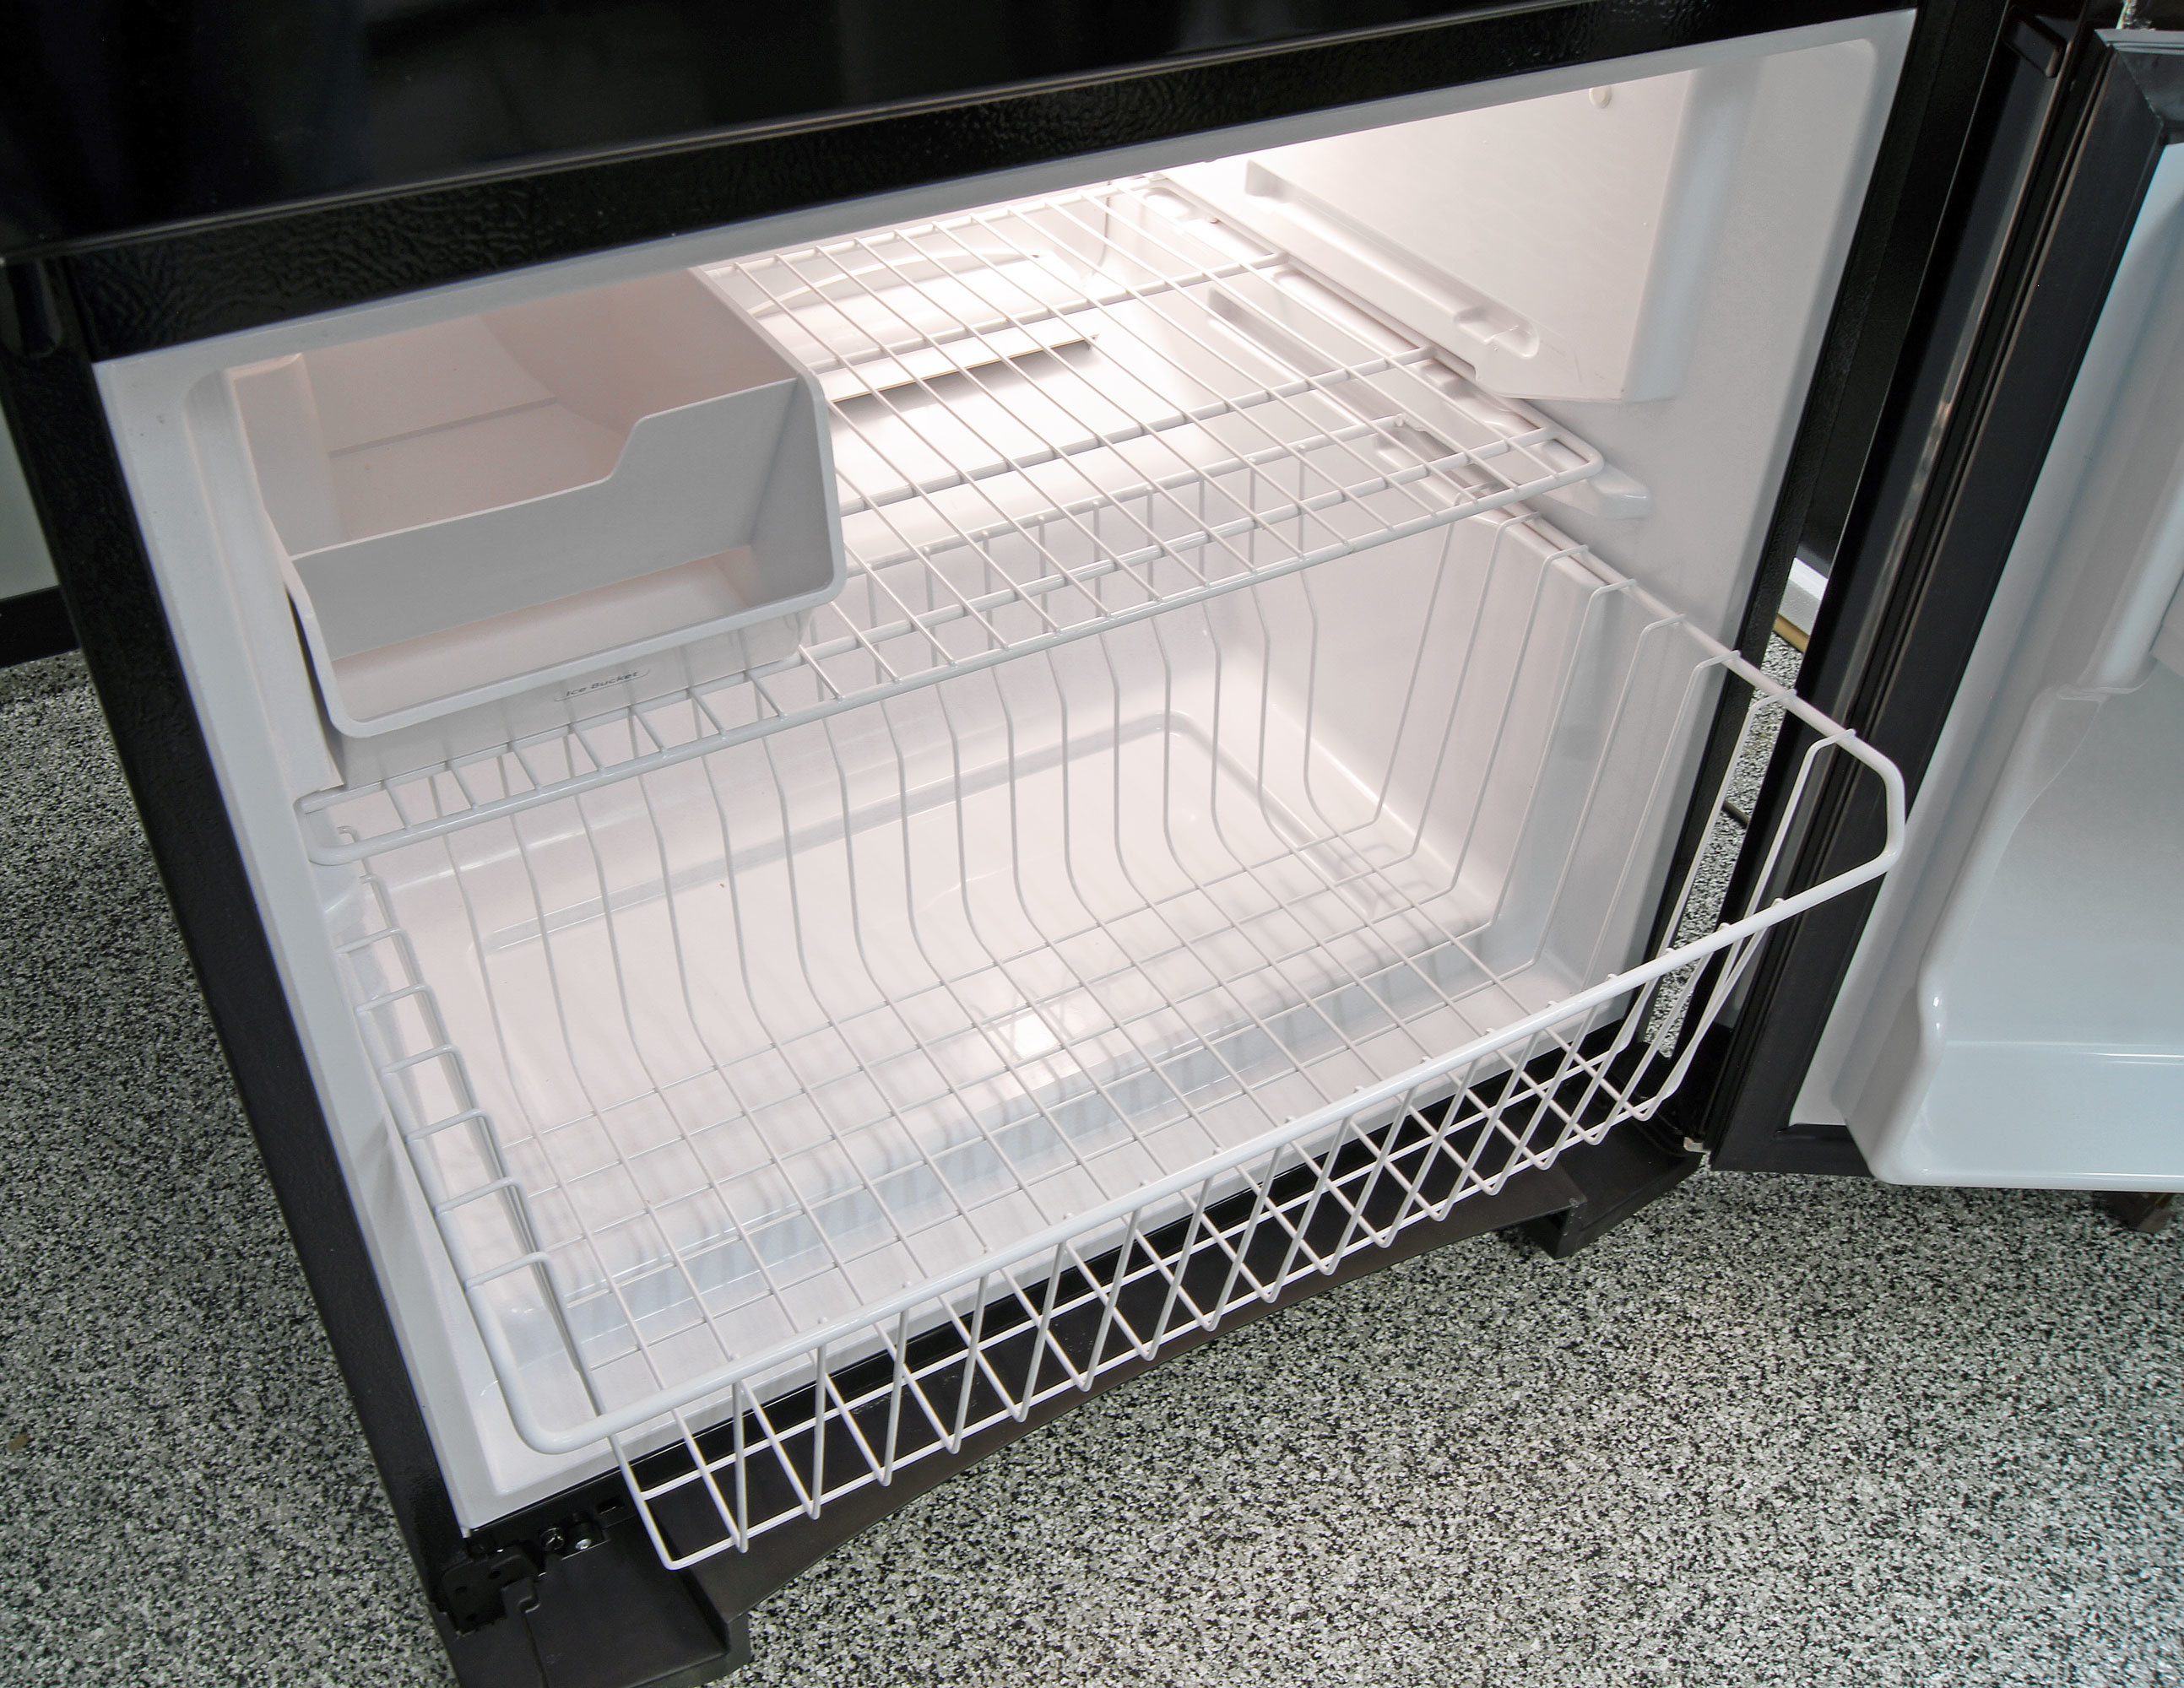 The GE Artistry ABE20EGEBS's freezer drawer slides out far enough to offer reasonable access.